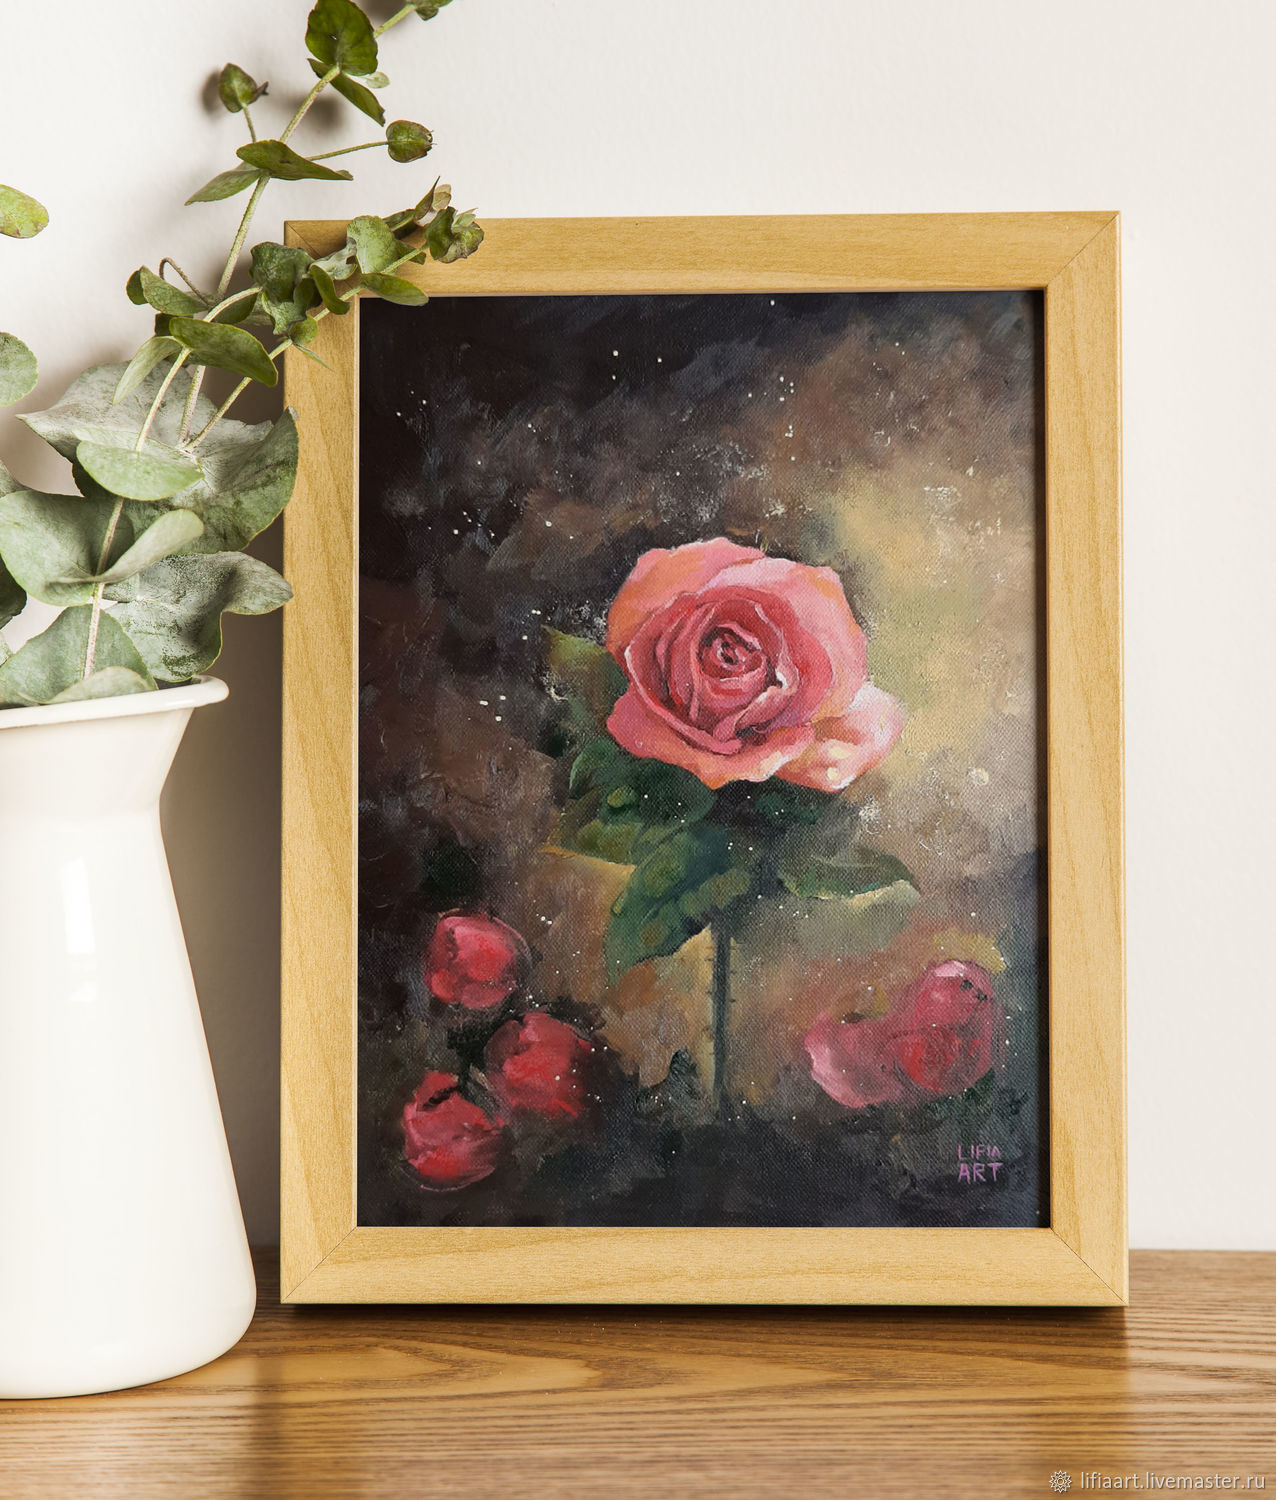 Painting with flowers ' Rose and ashes', Pictures, Belgorod,  Фото №1